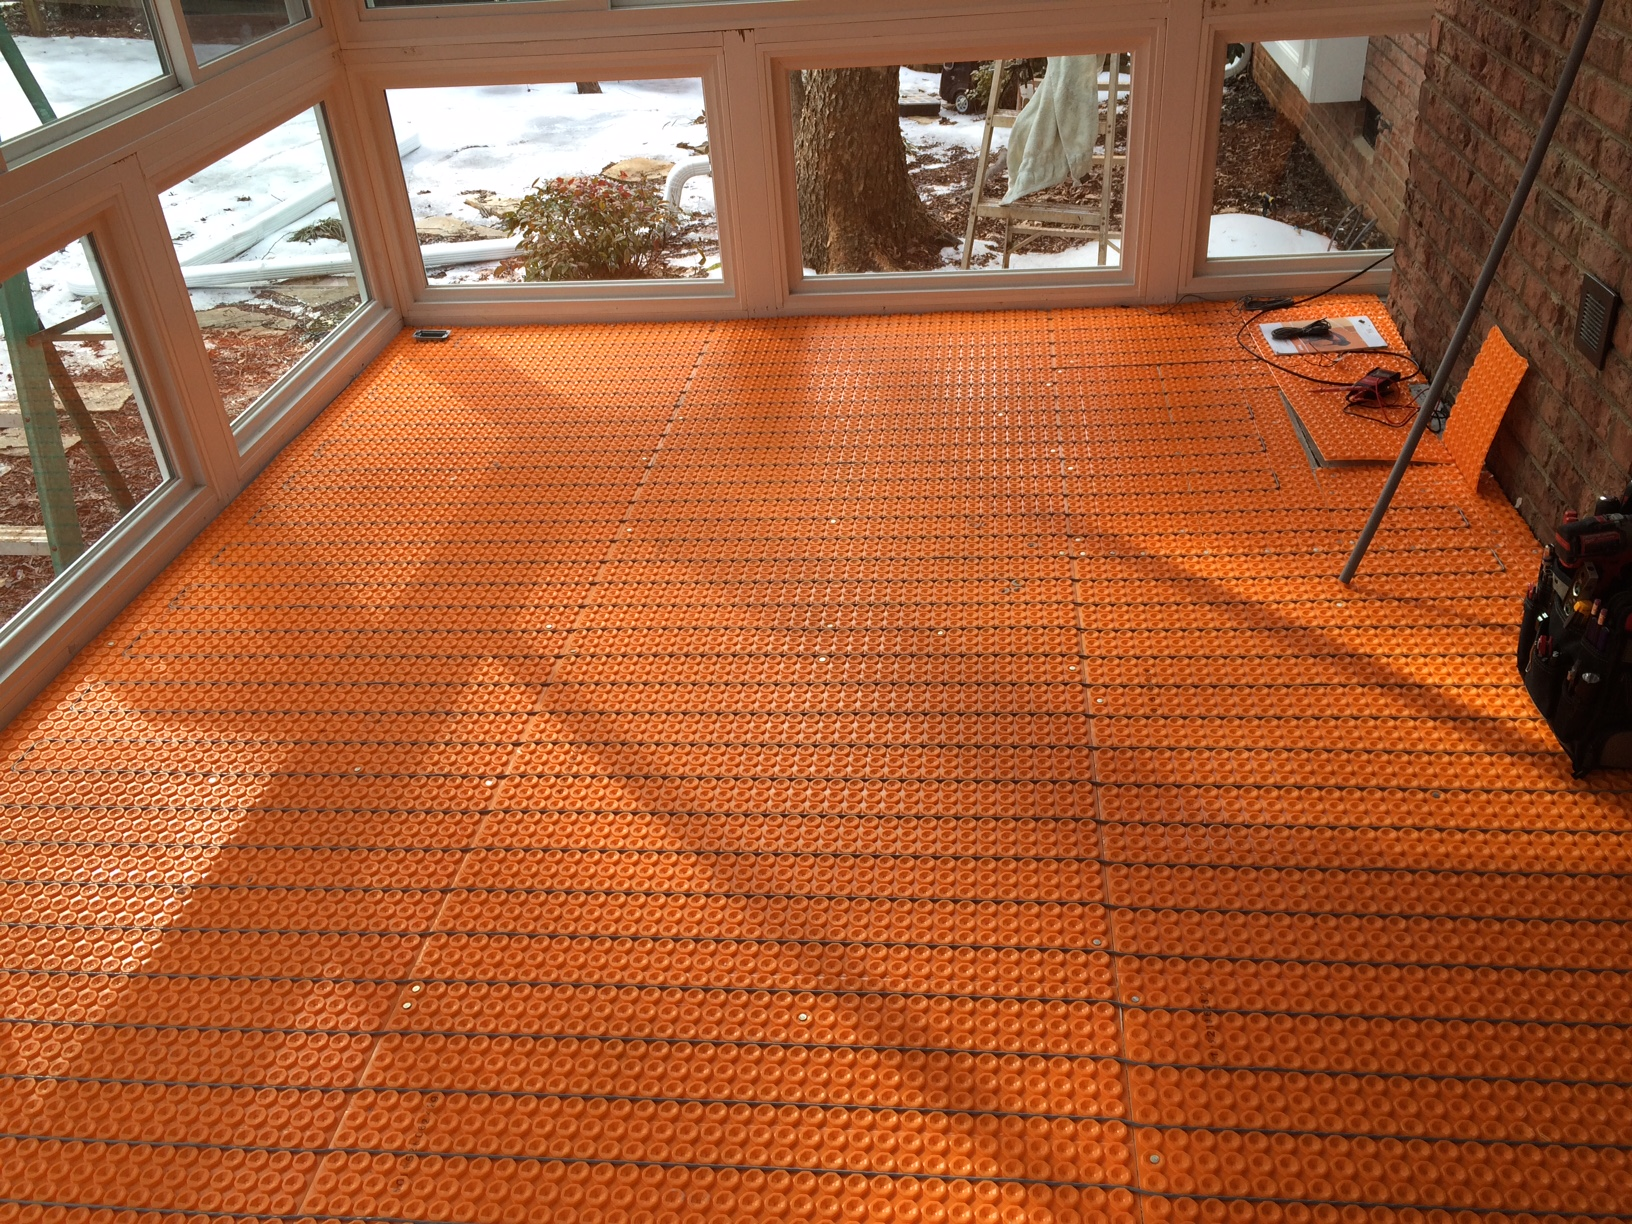 Heated ceramic tile floors